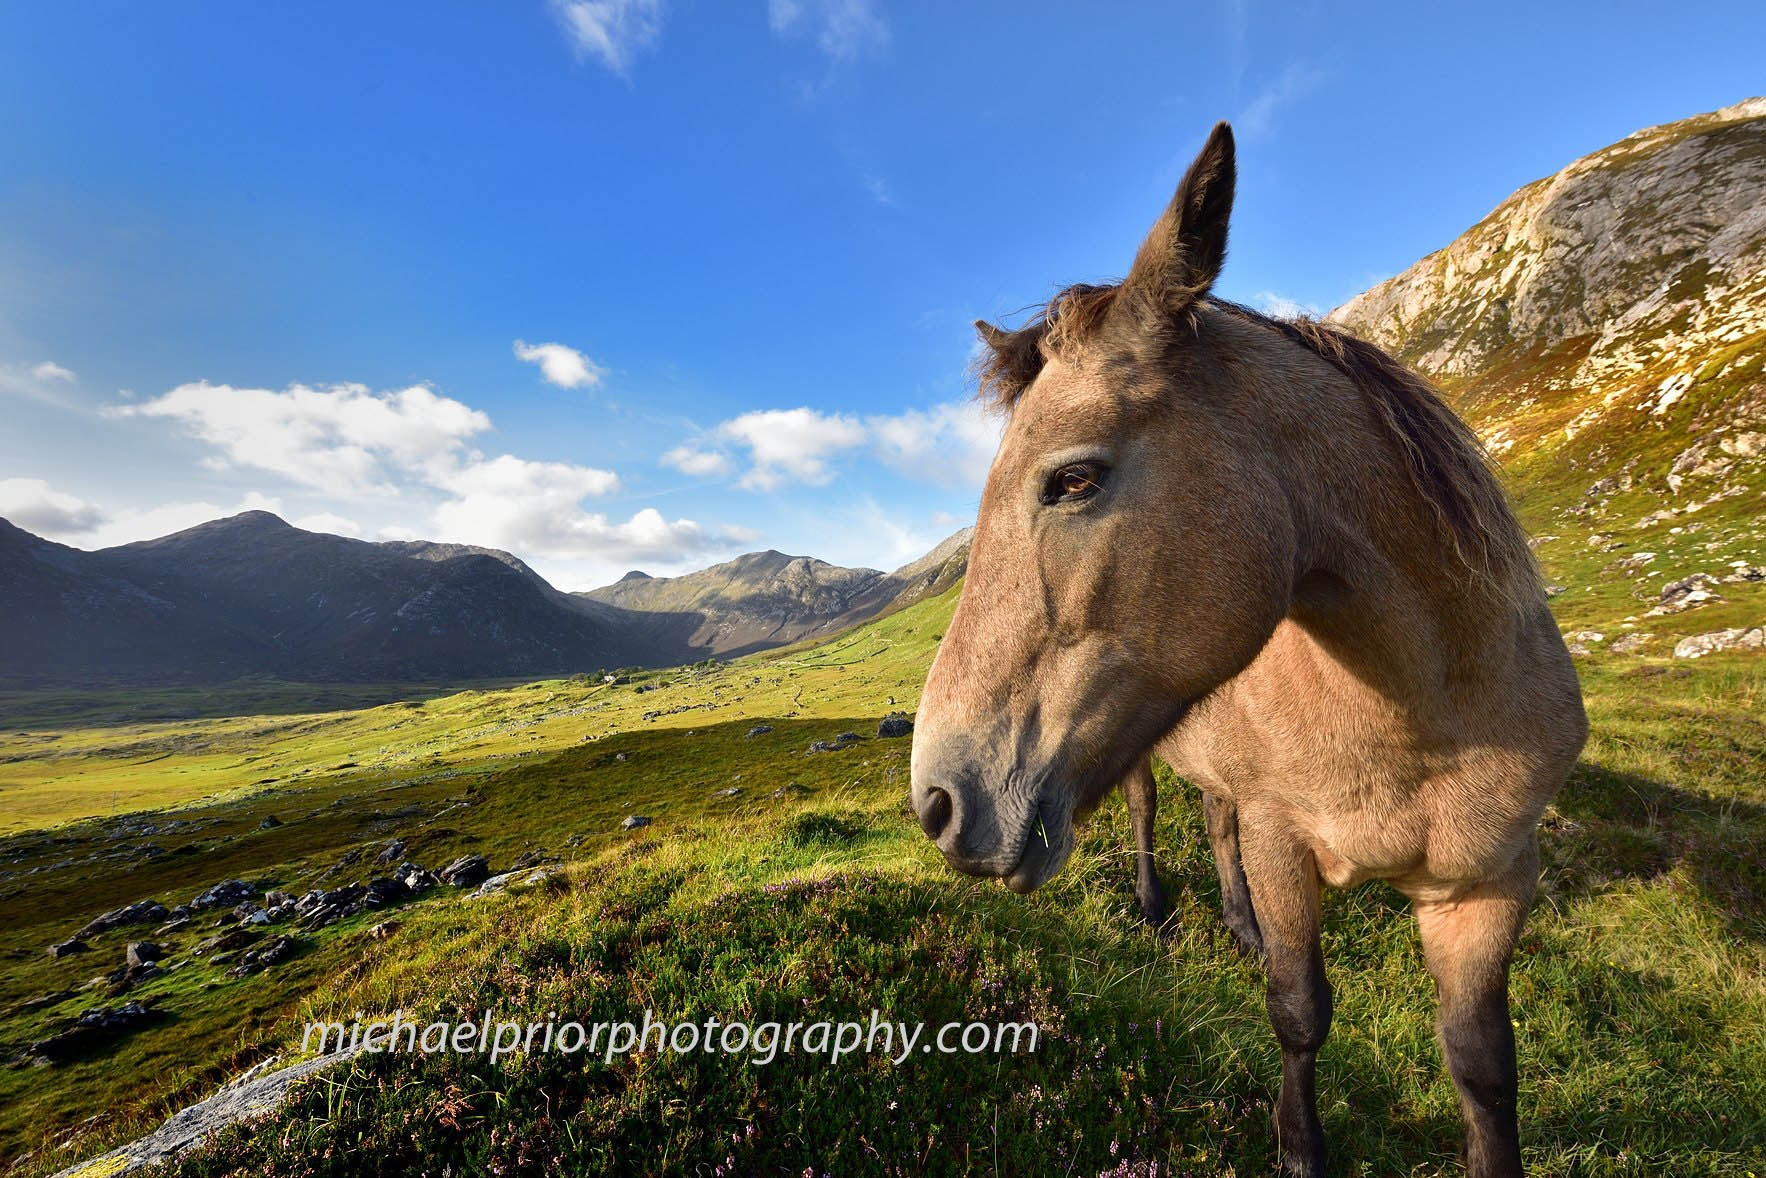 Connamara Pony In The Connamara National Park - Michael Prior Photography